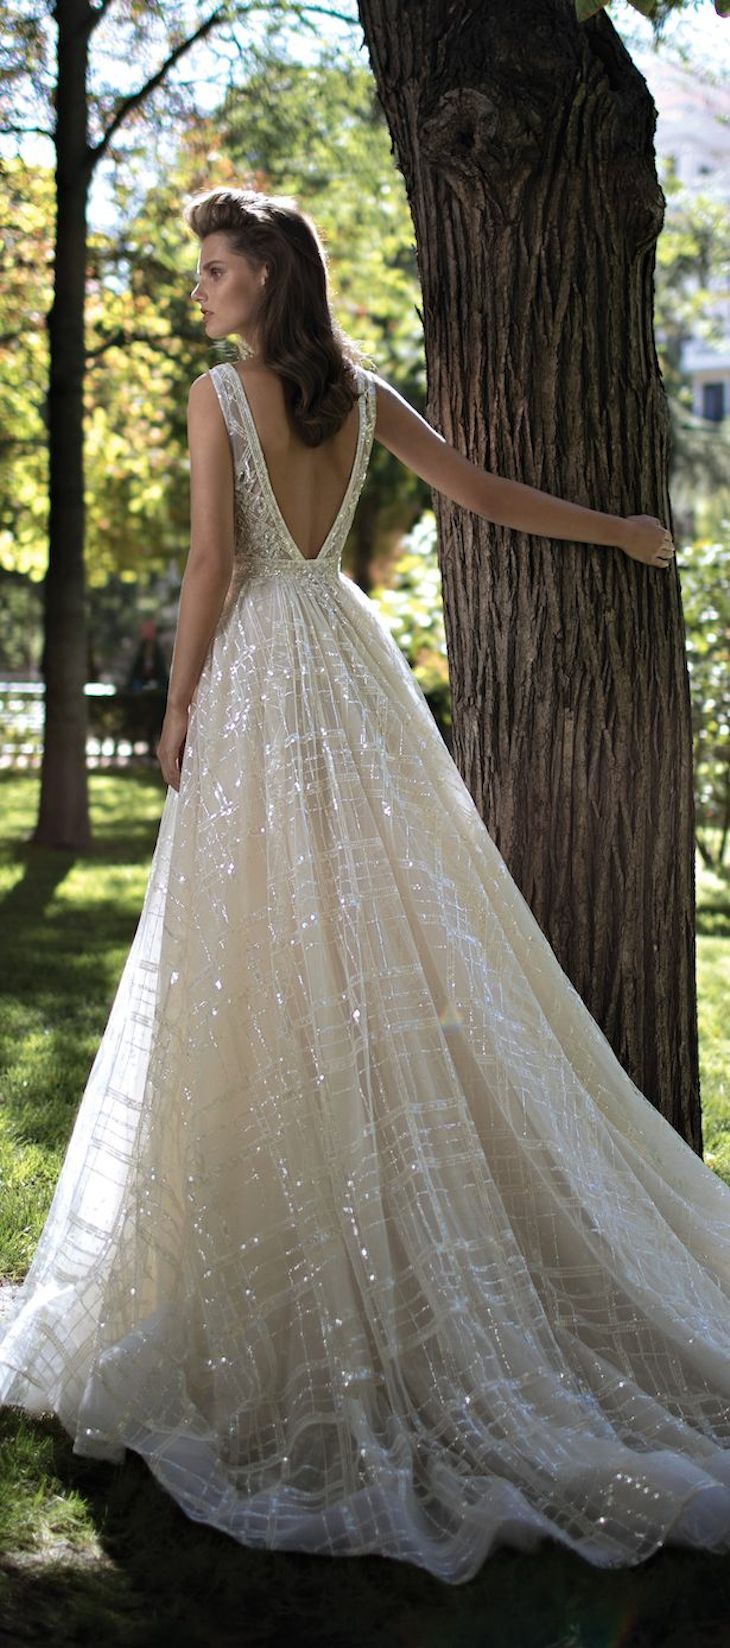 Here we complied a list of popular wedding dresses for 2016 to make your shopping experience as easy as possible. From boho, short to mermaid style, the special dress is out there. #Wedding #Wedding_Dresses